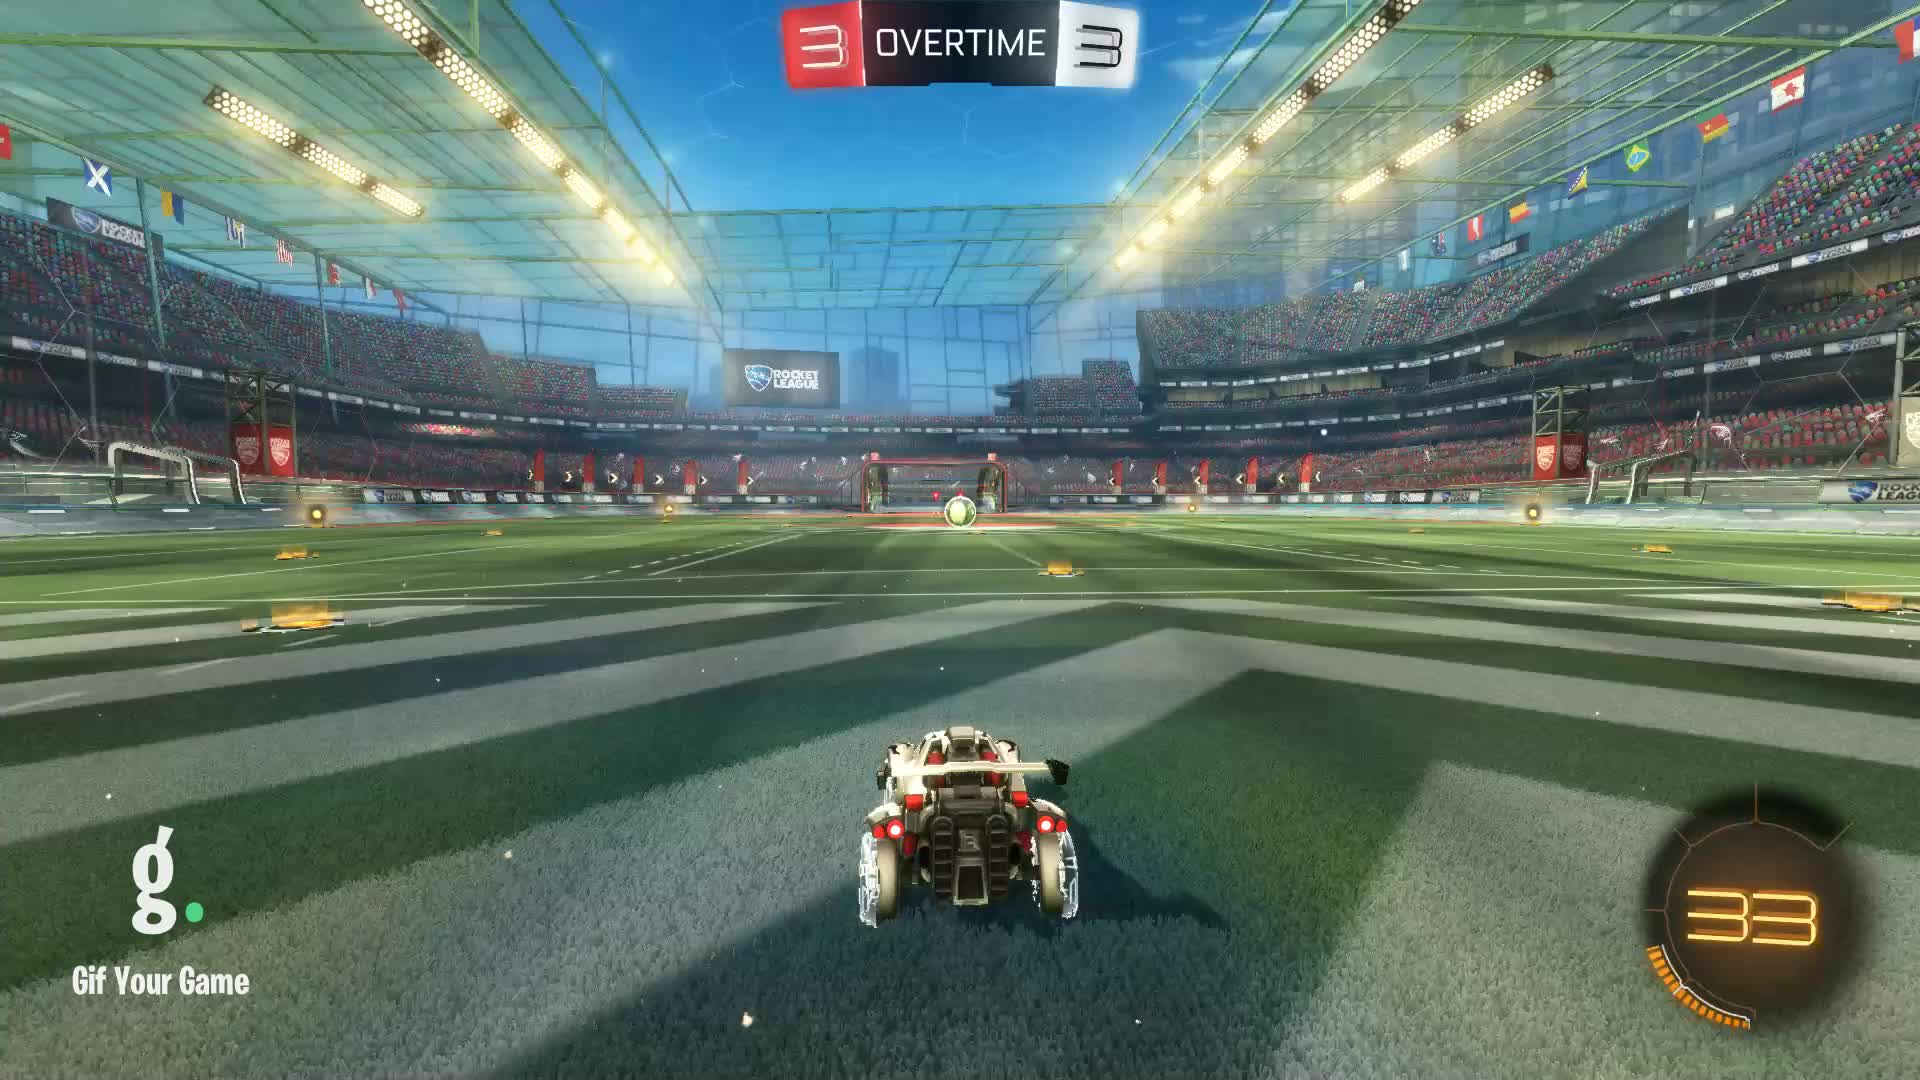 Gif Your Game, GifYourGame, Goal, Rocket League, RocketLeague, SwolSquirrel, Goal 7: SwolSquirrel GIFs